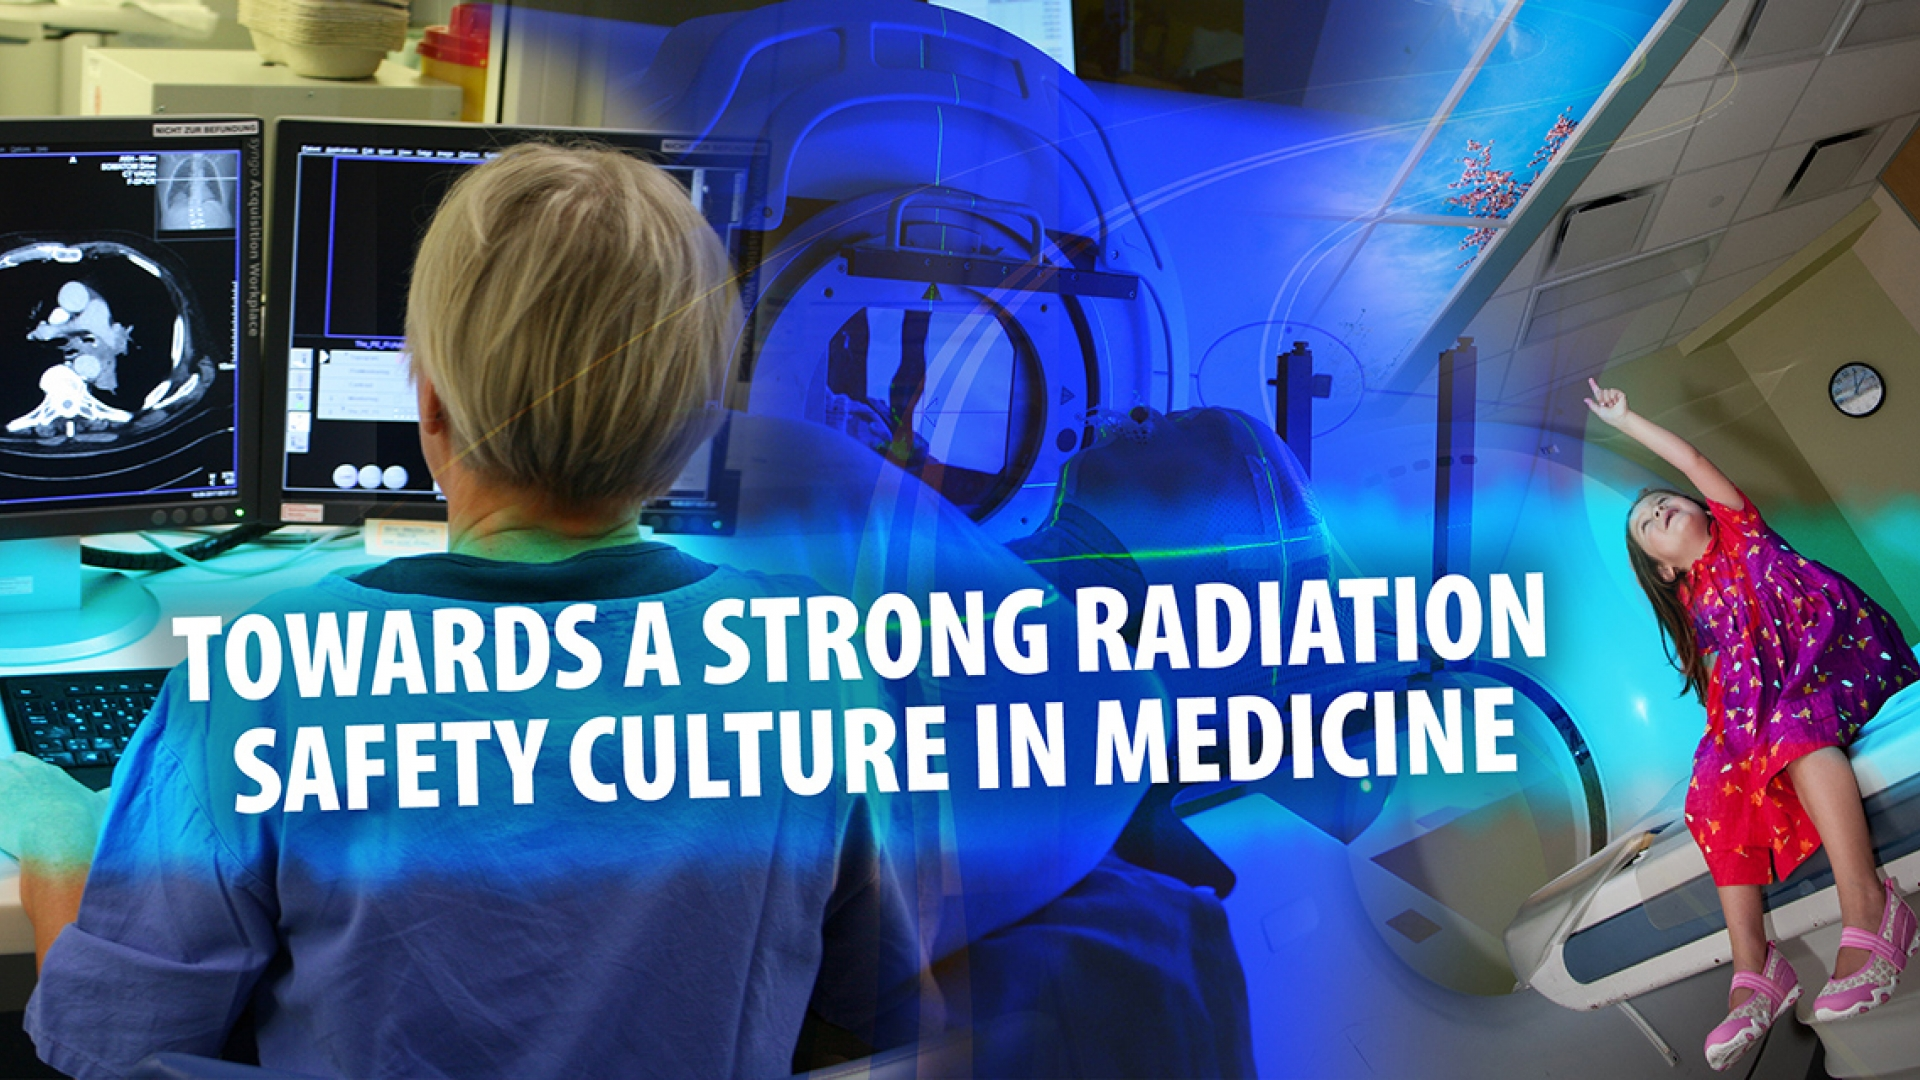 IAEA Competition: Towards a Strong Radiation Safety Culture in Medicine